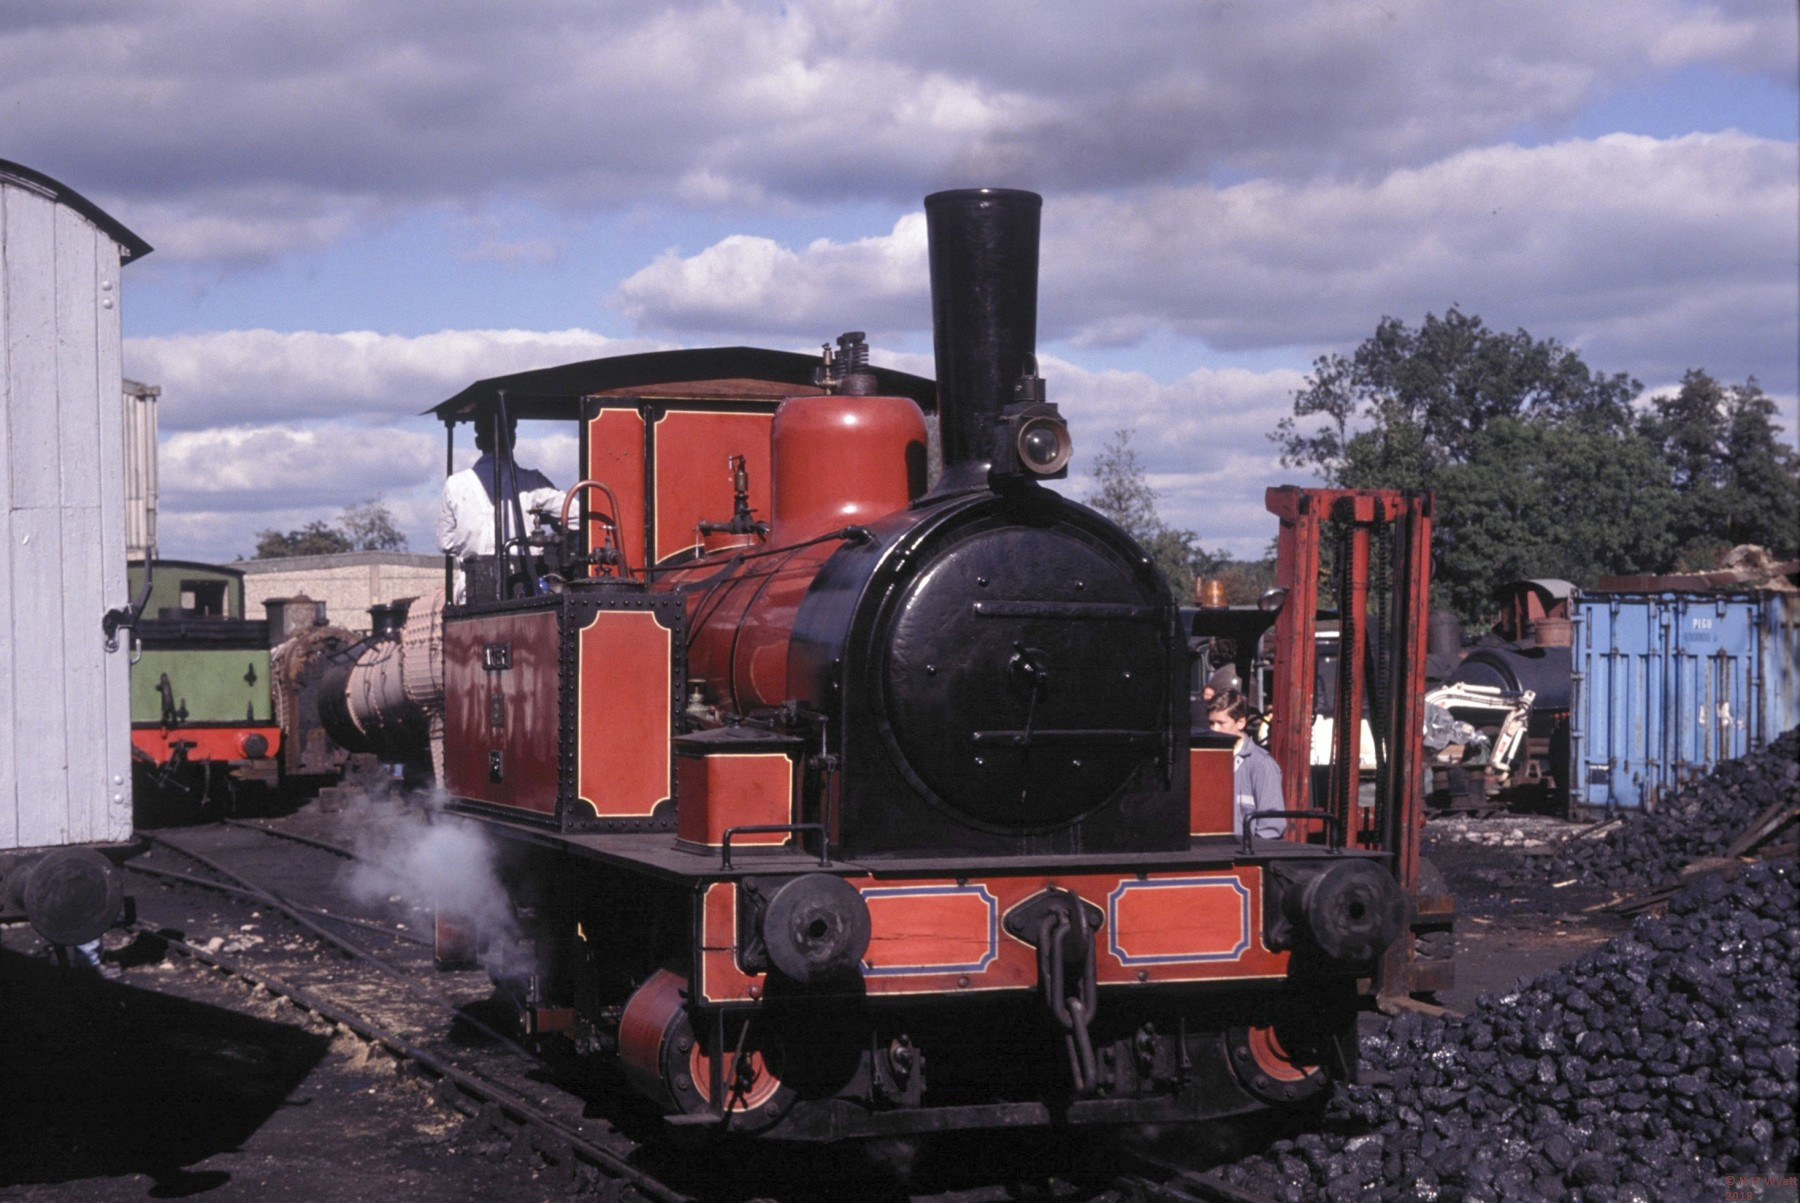 0-4-0 tank loco Captain Baxter at the Bluebell Railway in 1989